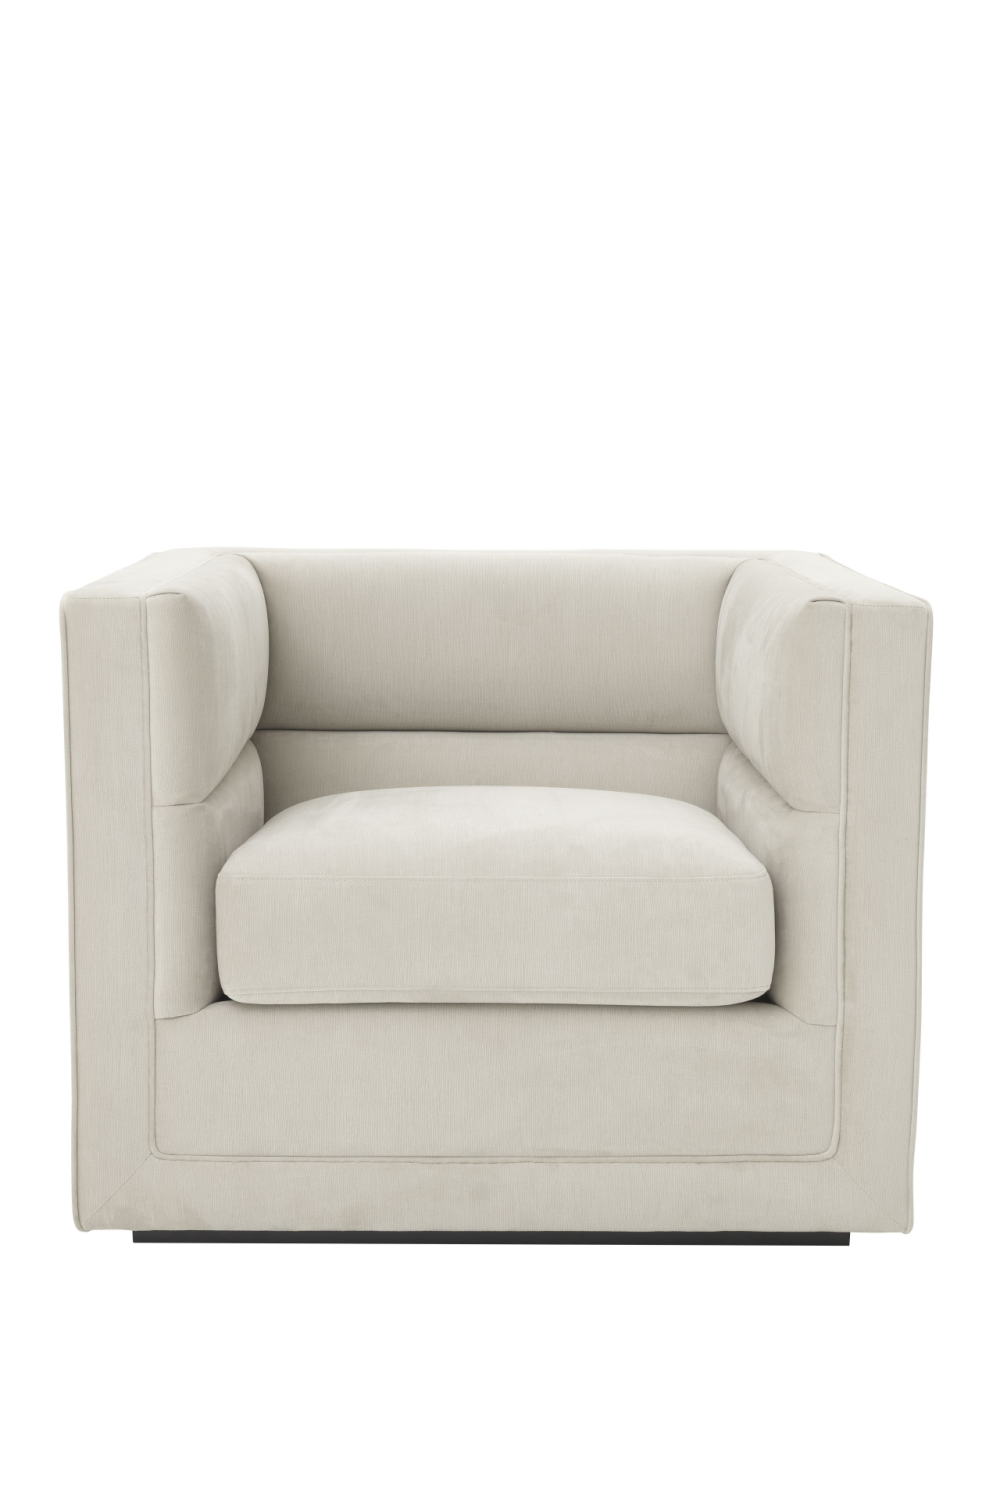 Light Gray Upholstered Armchair | Eichholtz Adonia | OROA Furniture